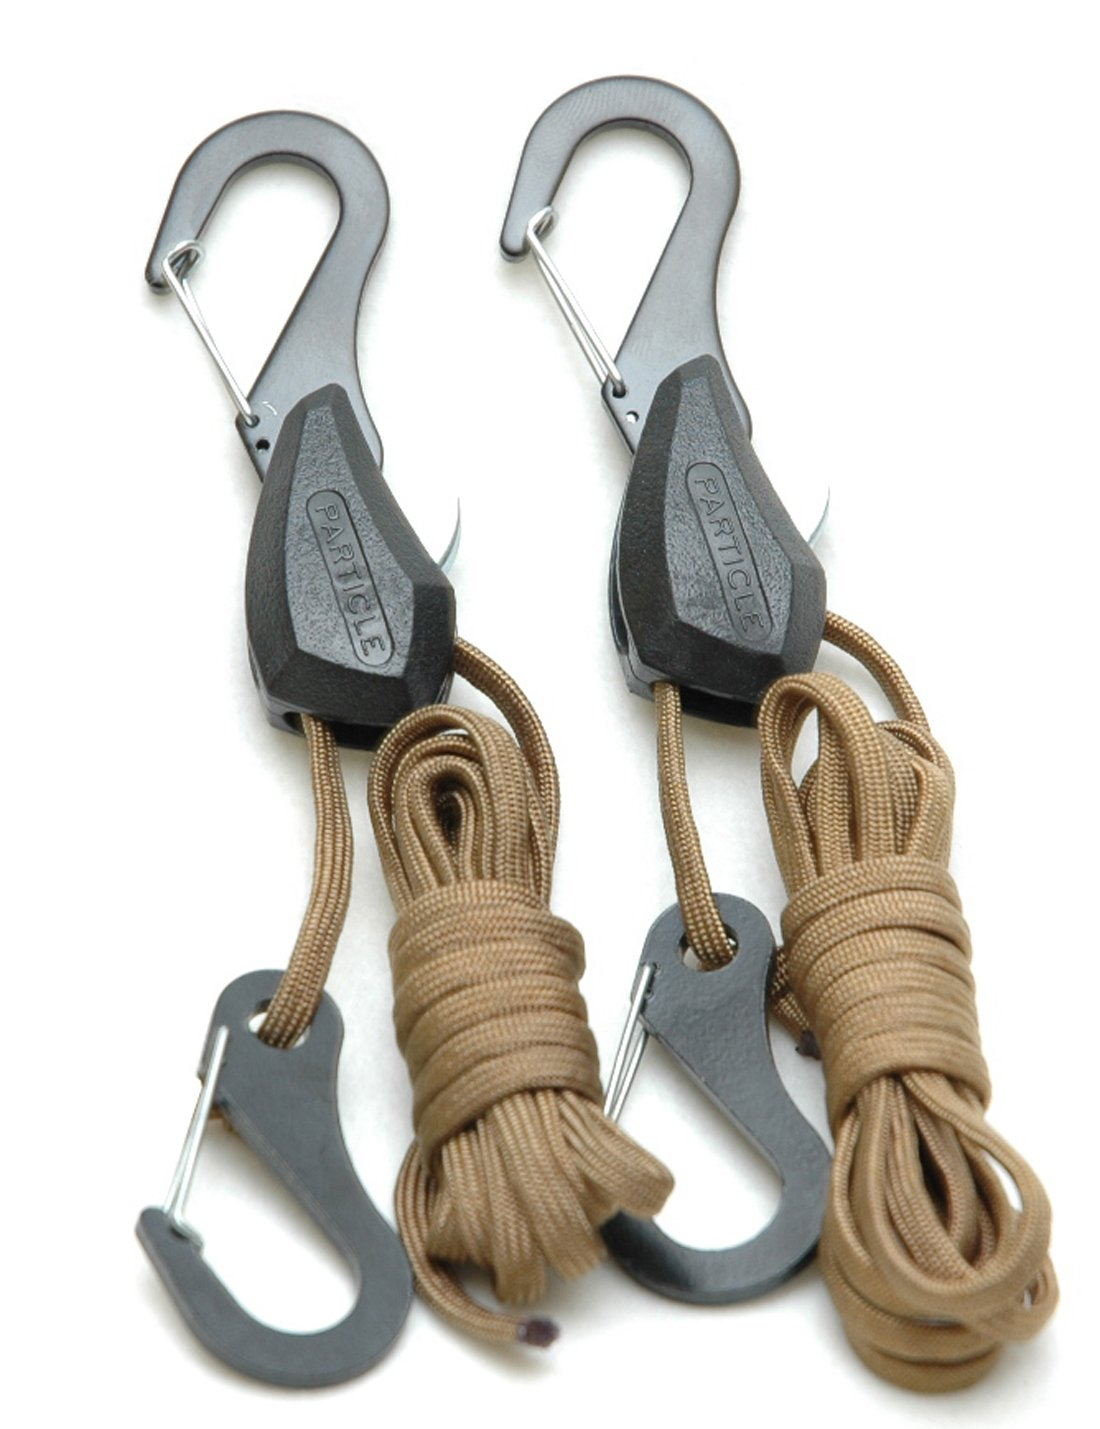 PROGRIP 054020 Particle by Symbiote 550 Paracord Rope Lock Tie Down with Snap Hooks 6 ft Pack of 2